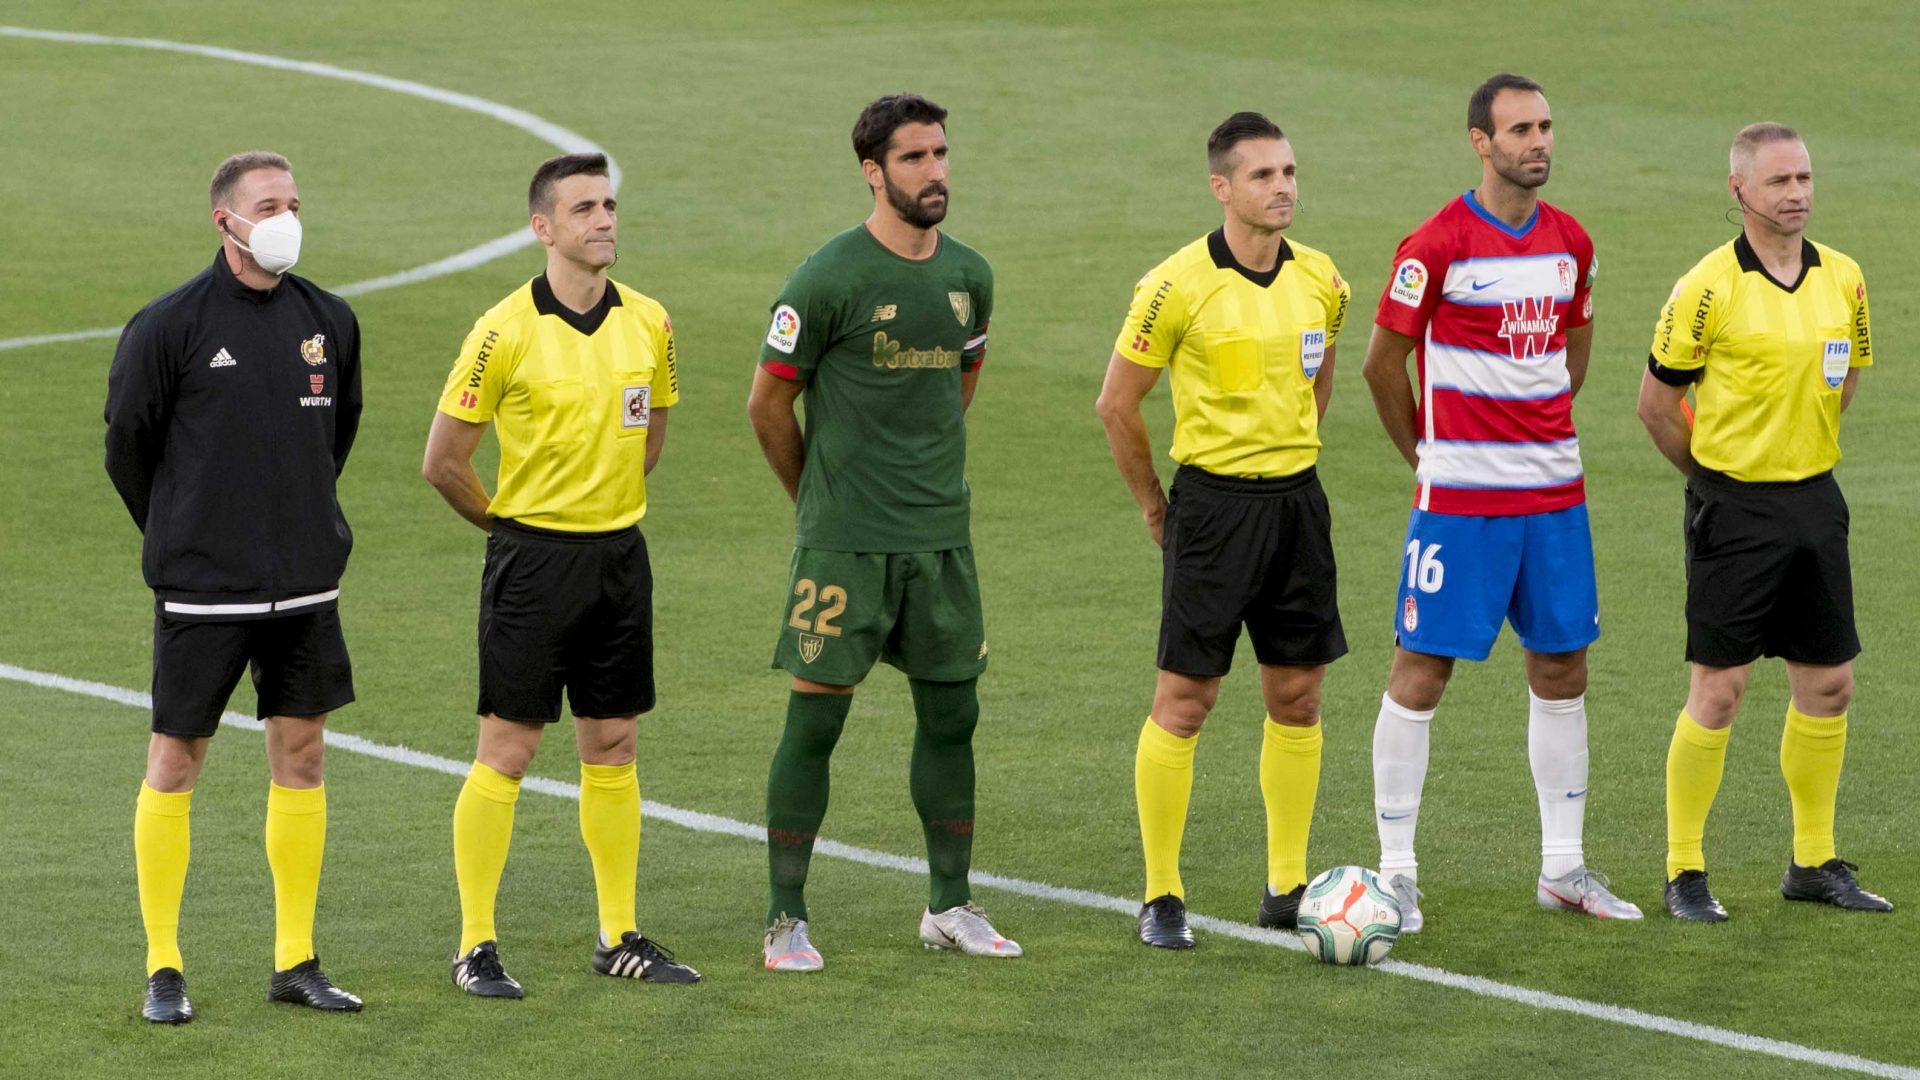 Granada CF – Athletic Club (J38, LaLiga 2019-20)